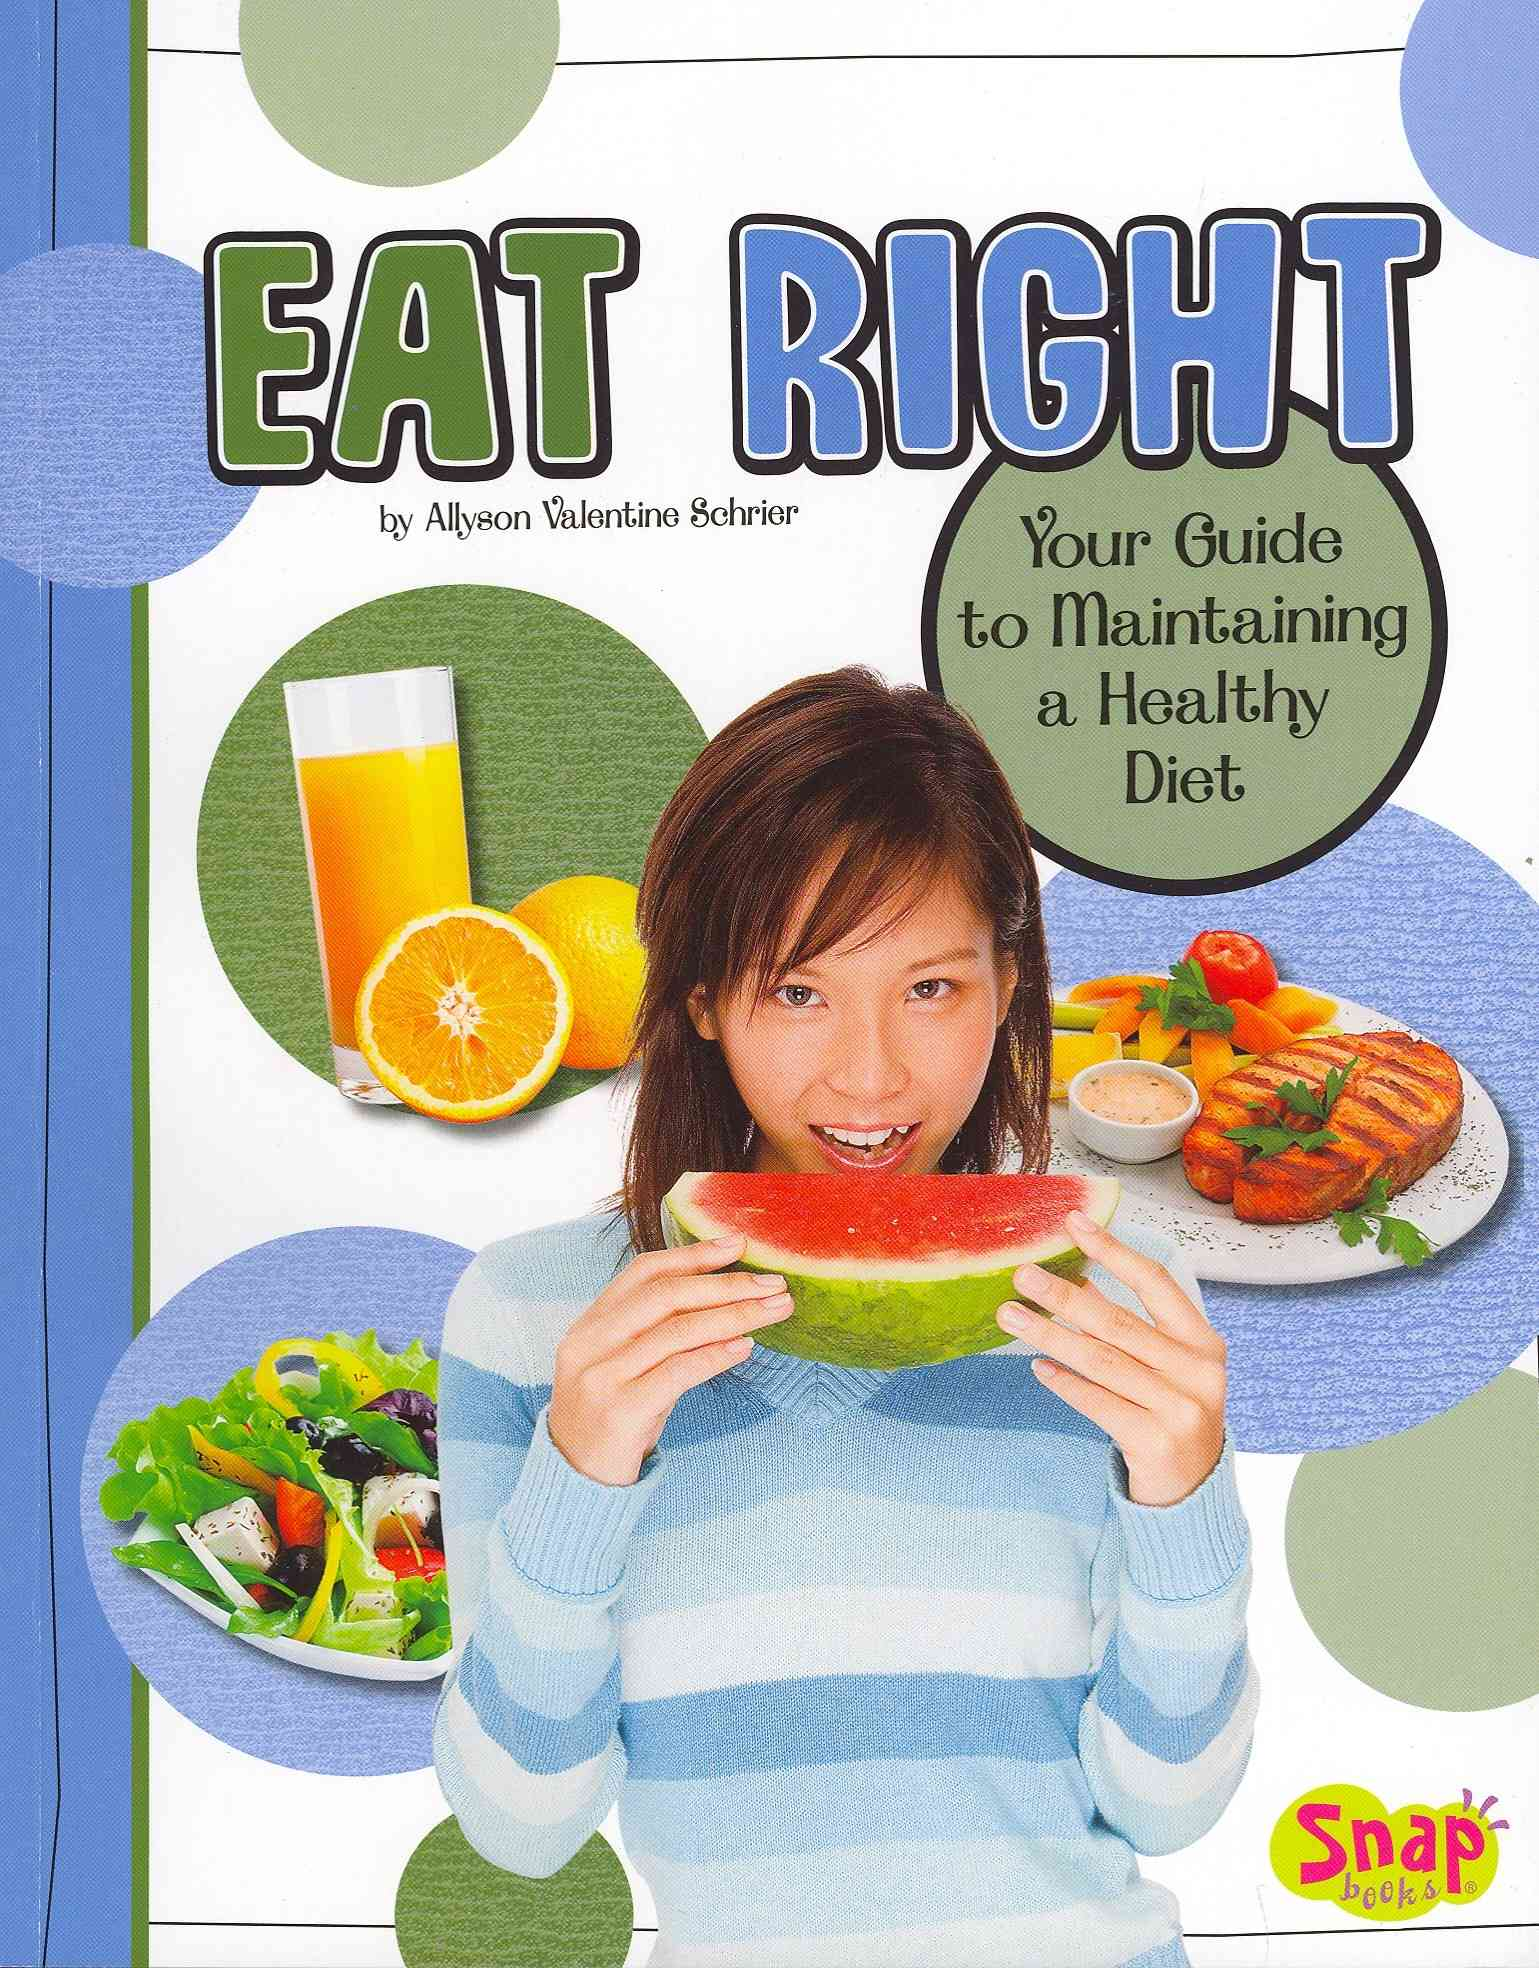 Eat Right By Schrier, Allyson Valentine